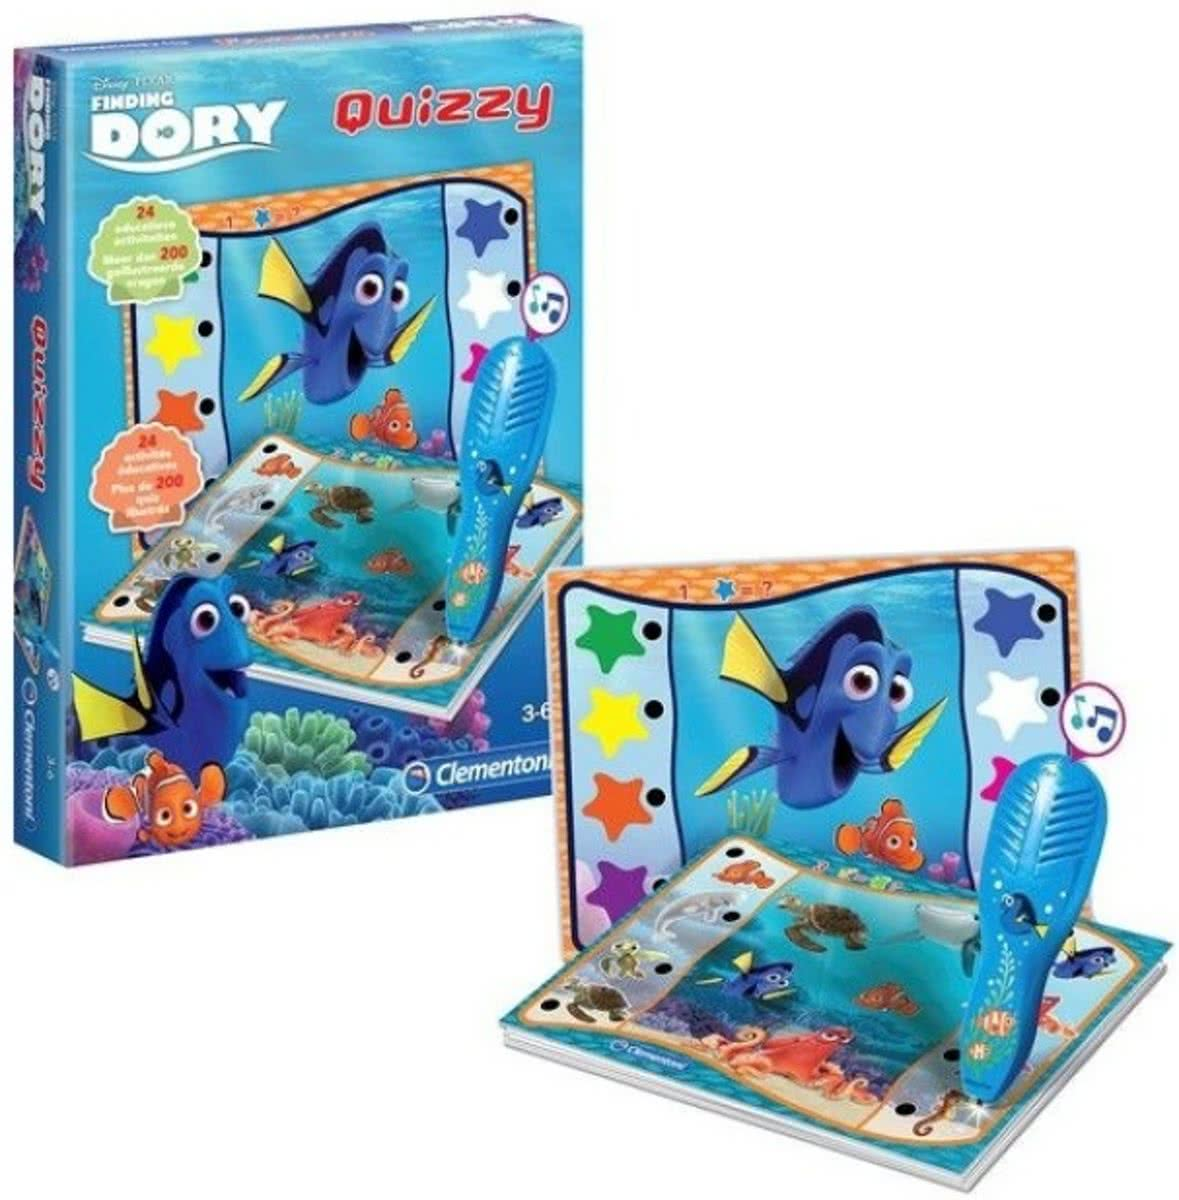 FINDING DORY QUIZZY